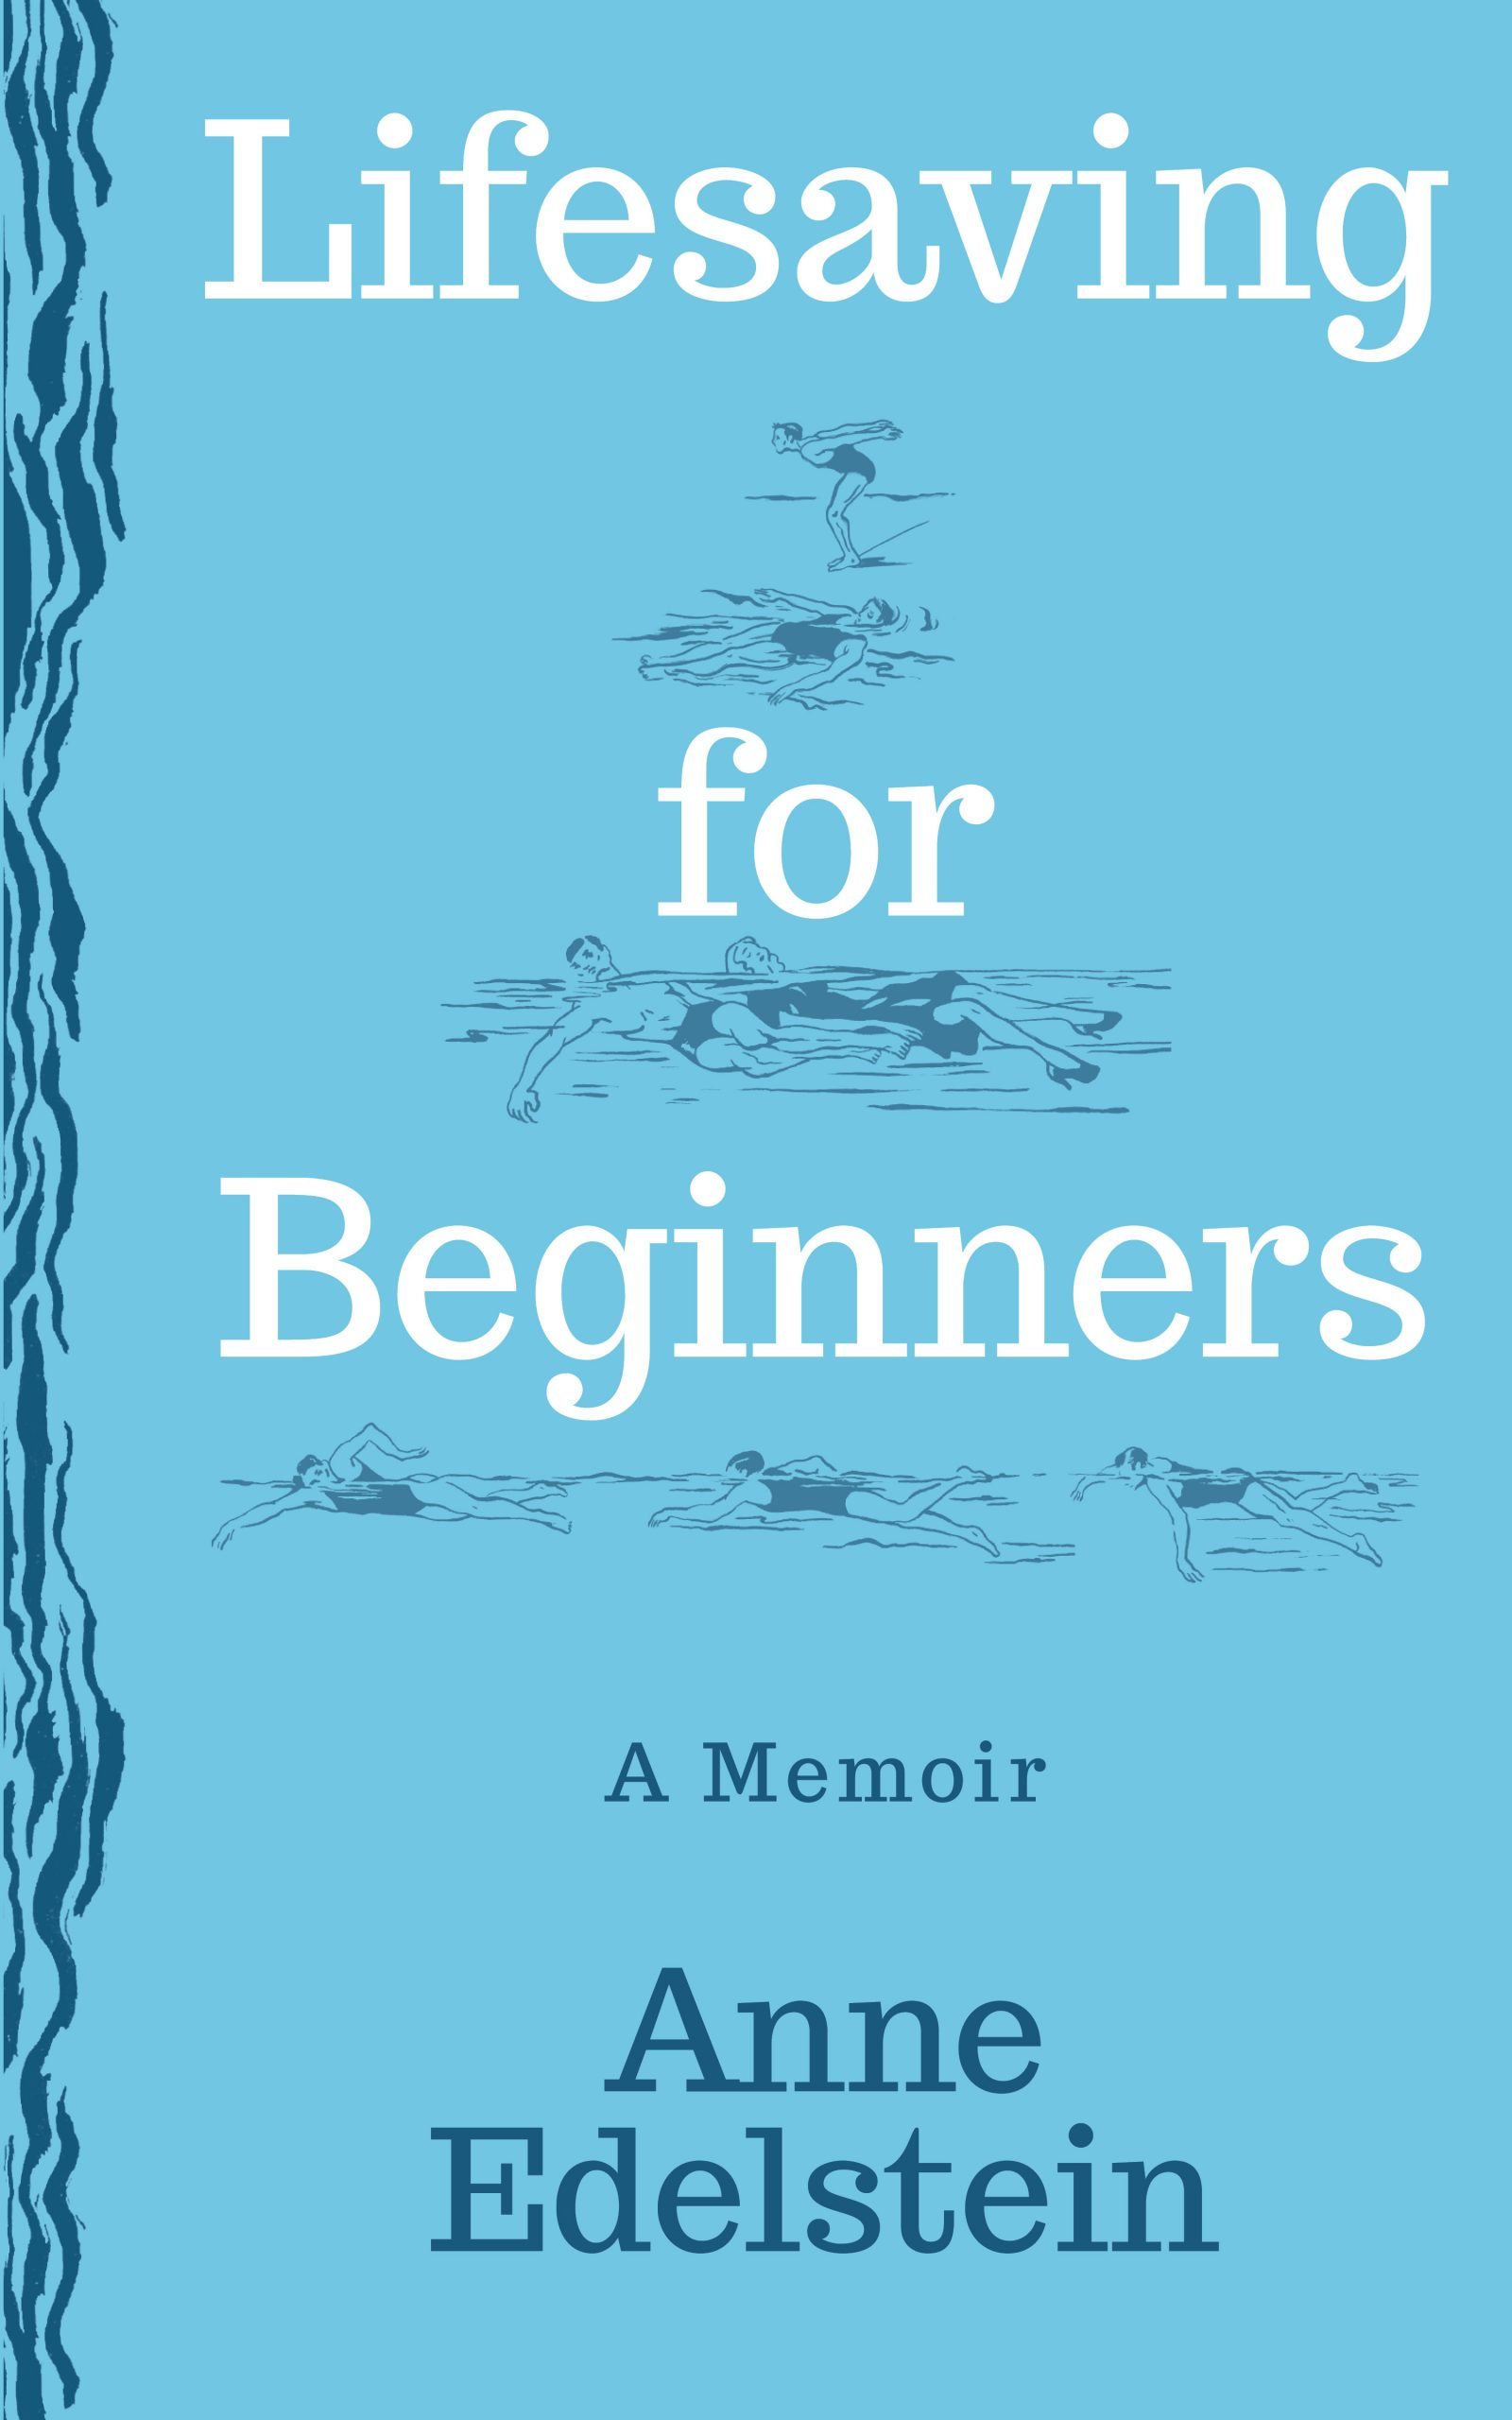 A blue background with small cartoons of someone swimming and another person saving a person in the water with white script that reads Lifesaving for Beginners a memoir by Anne Edelstein.